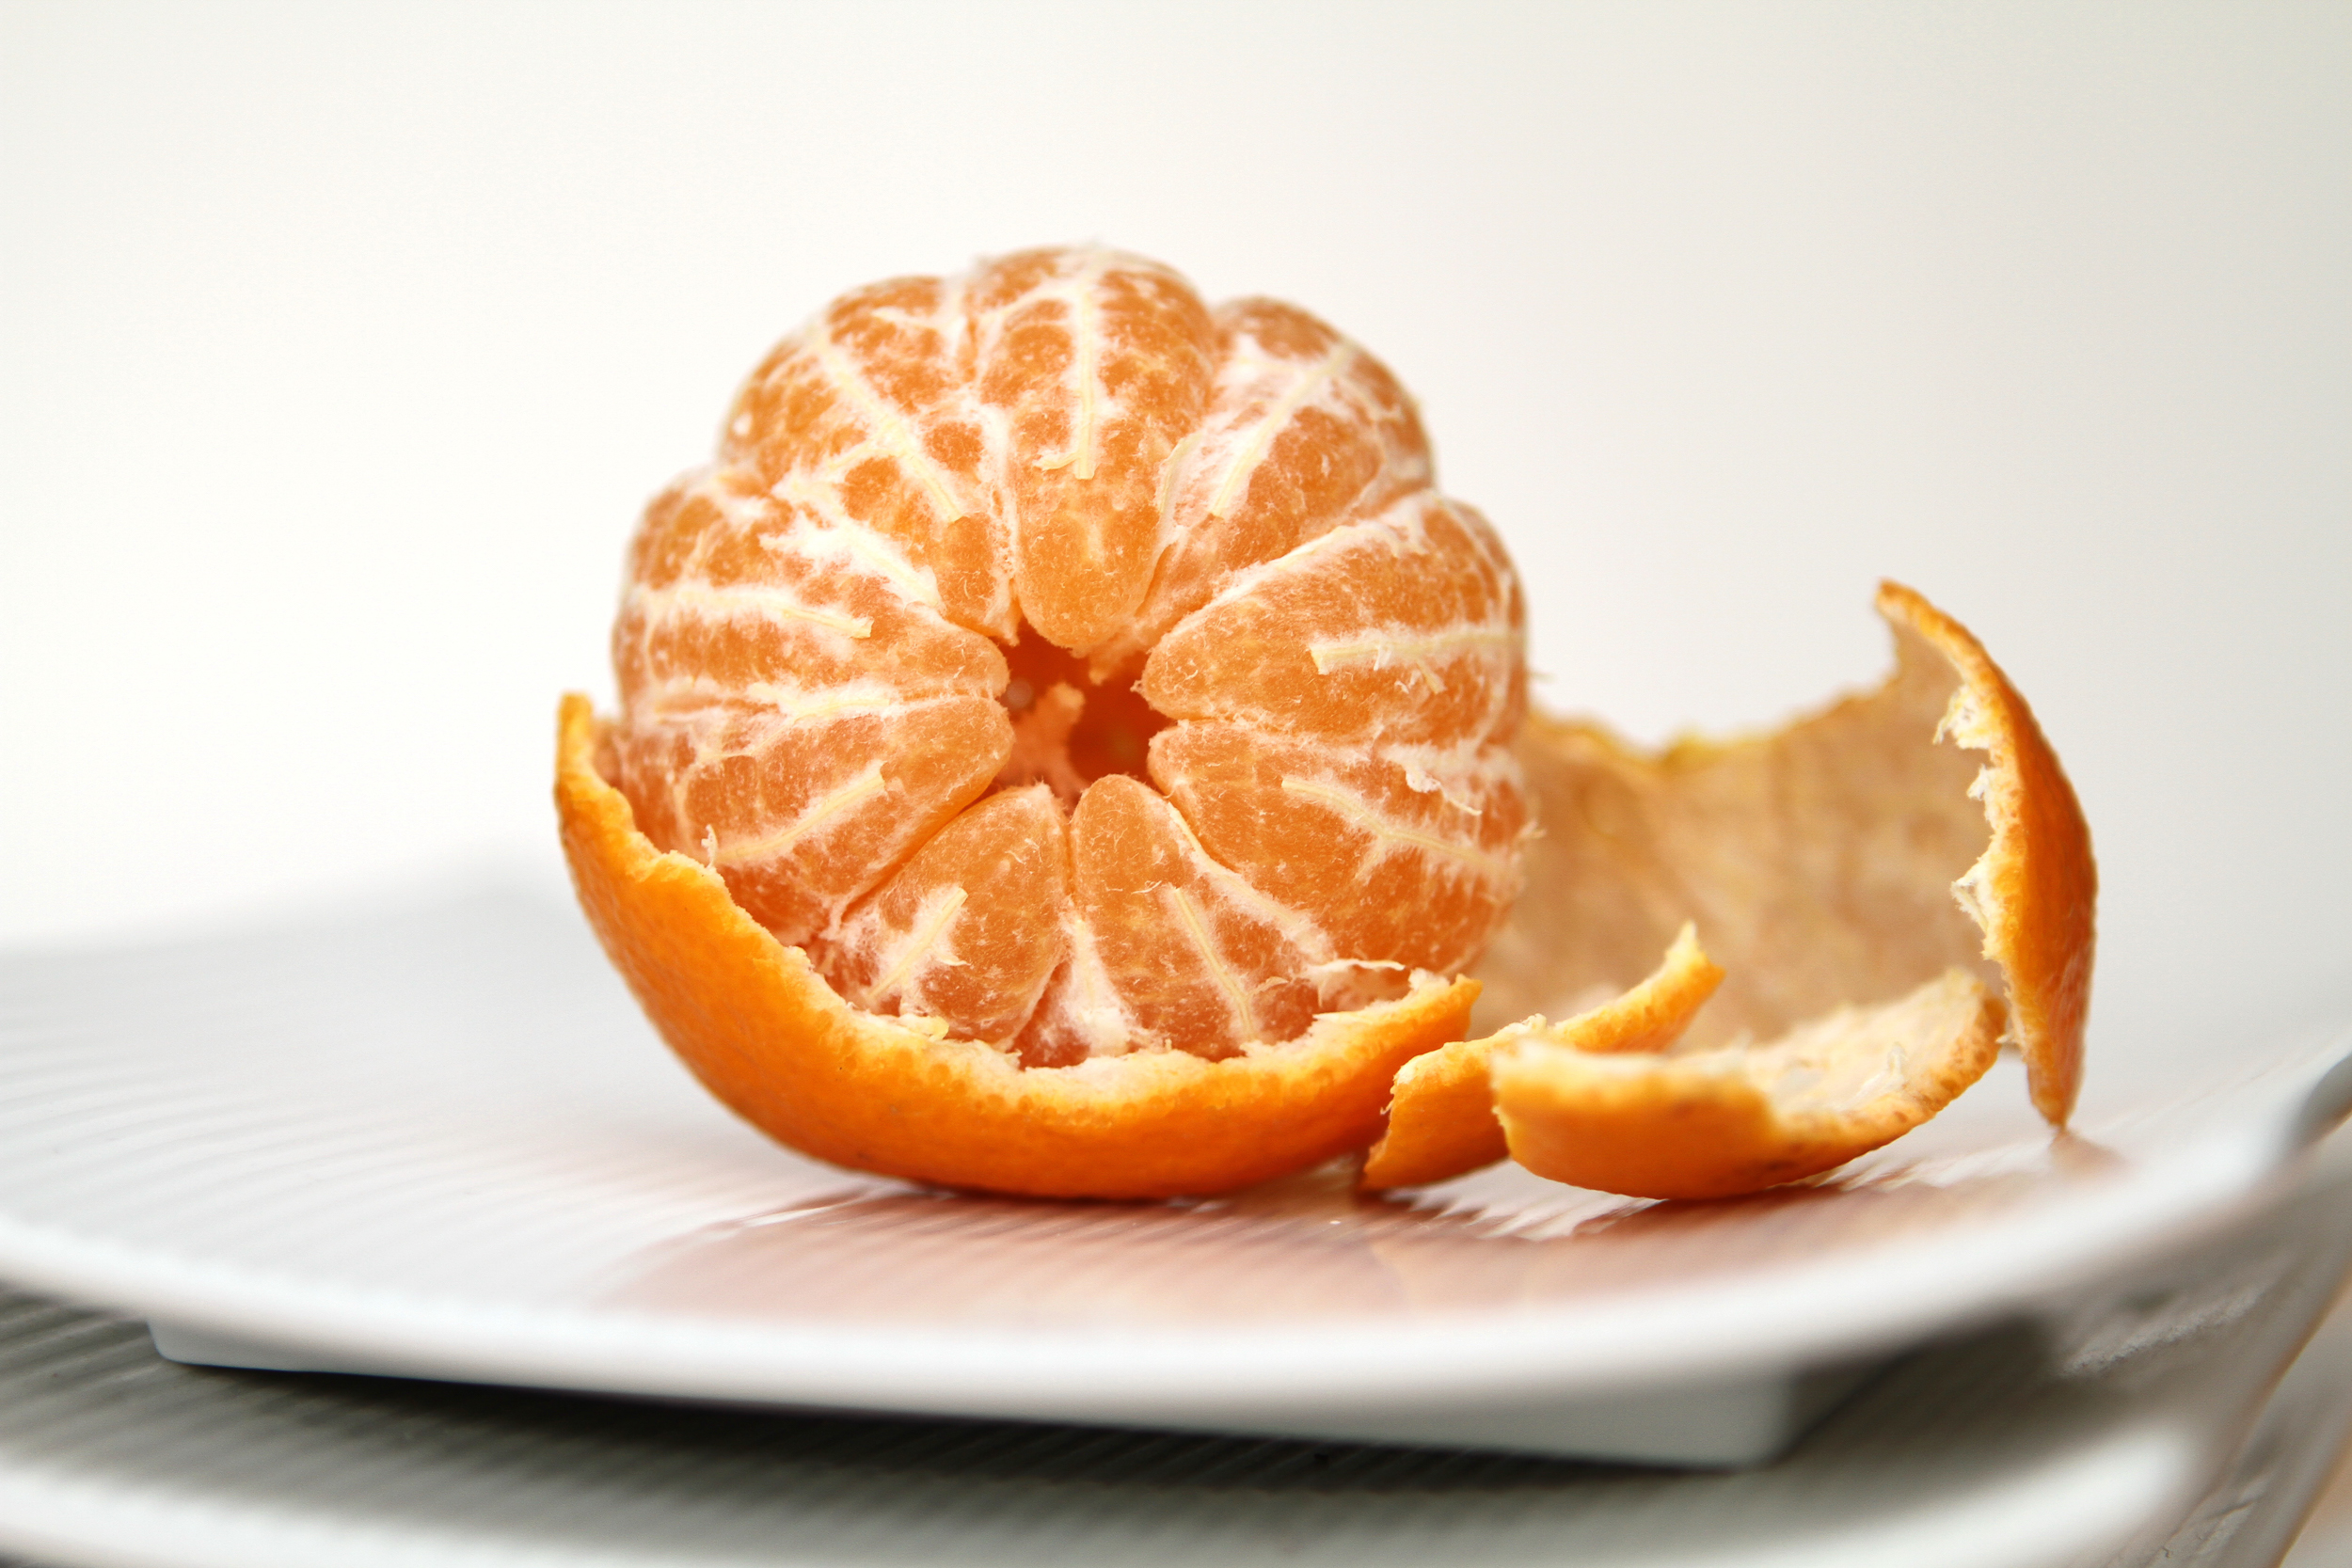 Culinary Photography: Fruit